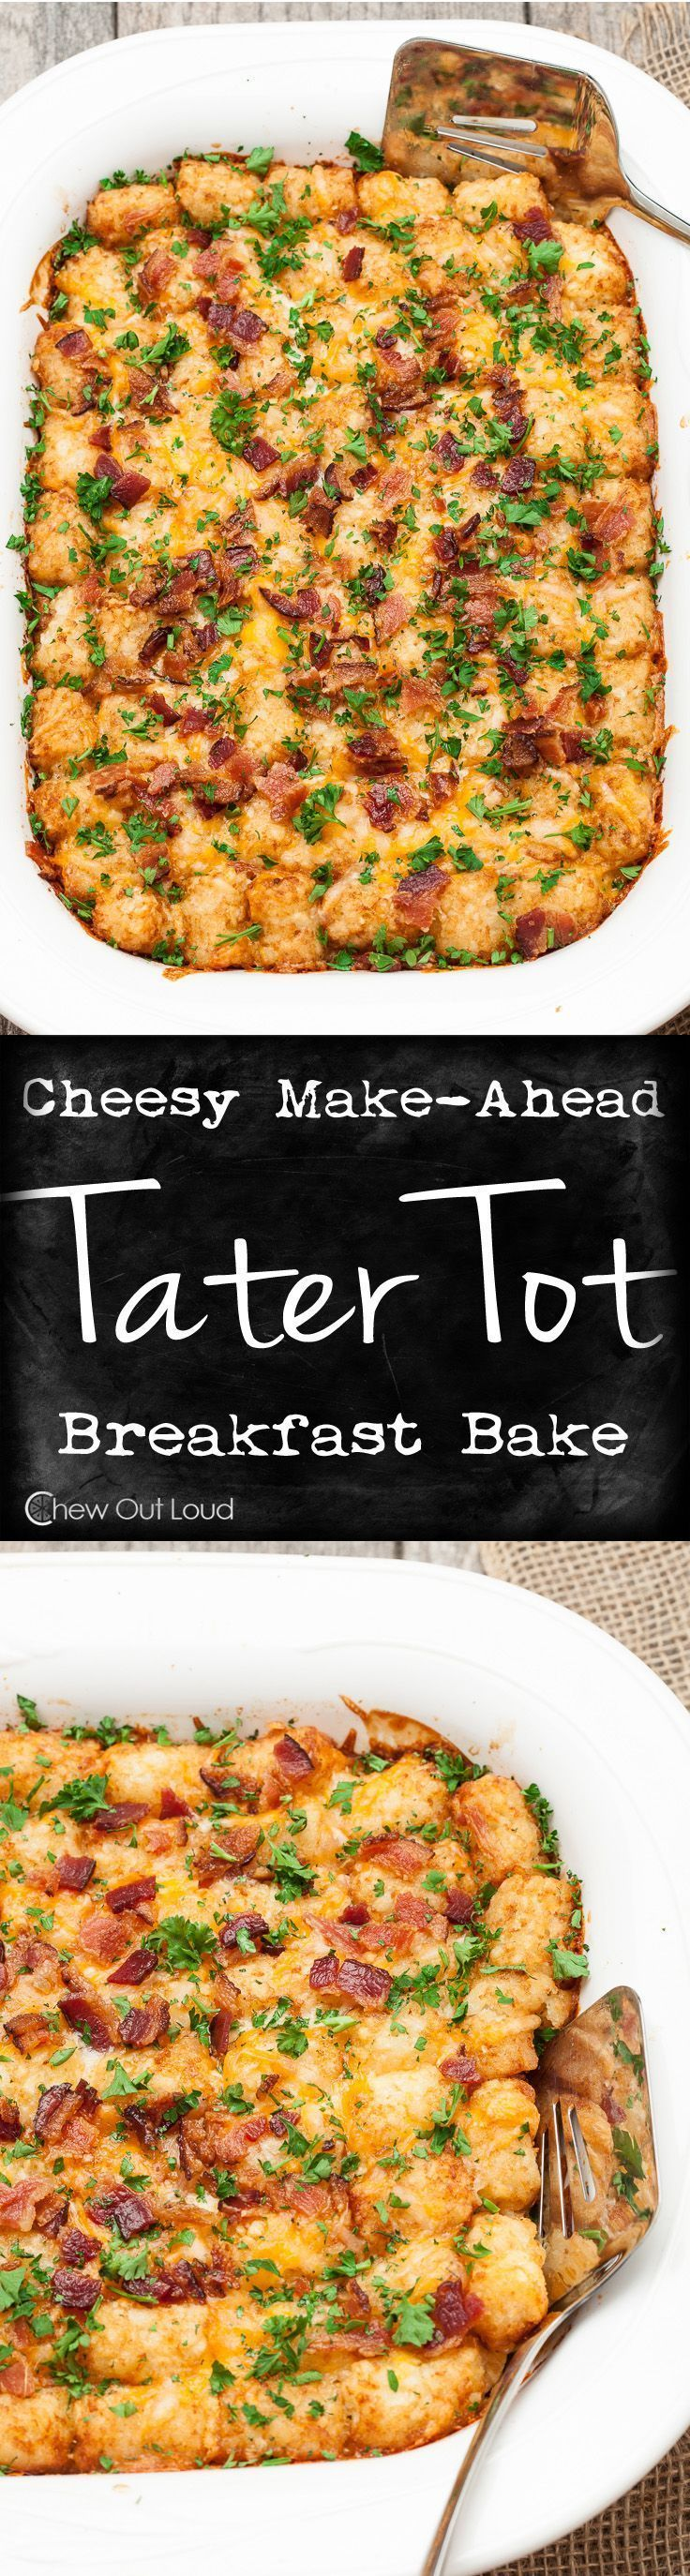 Cheesy Tater Tot Breakfast Bake - Just a handful of ingredients, make-ahead the night before